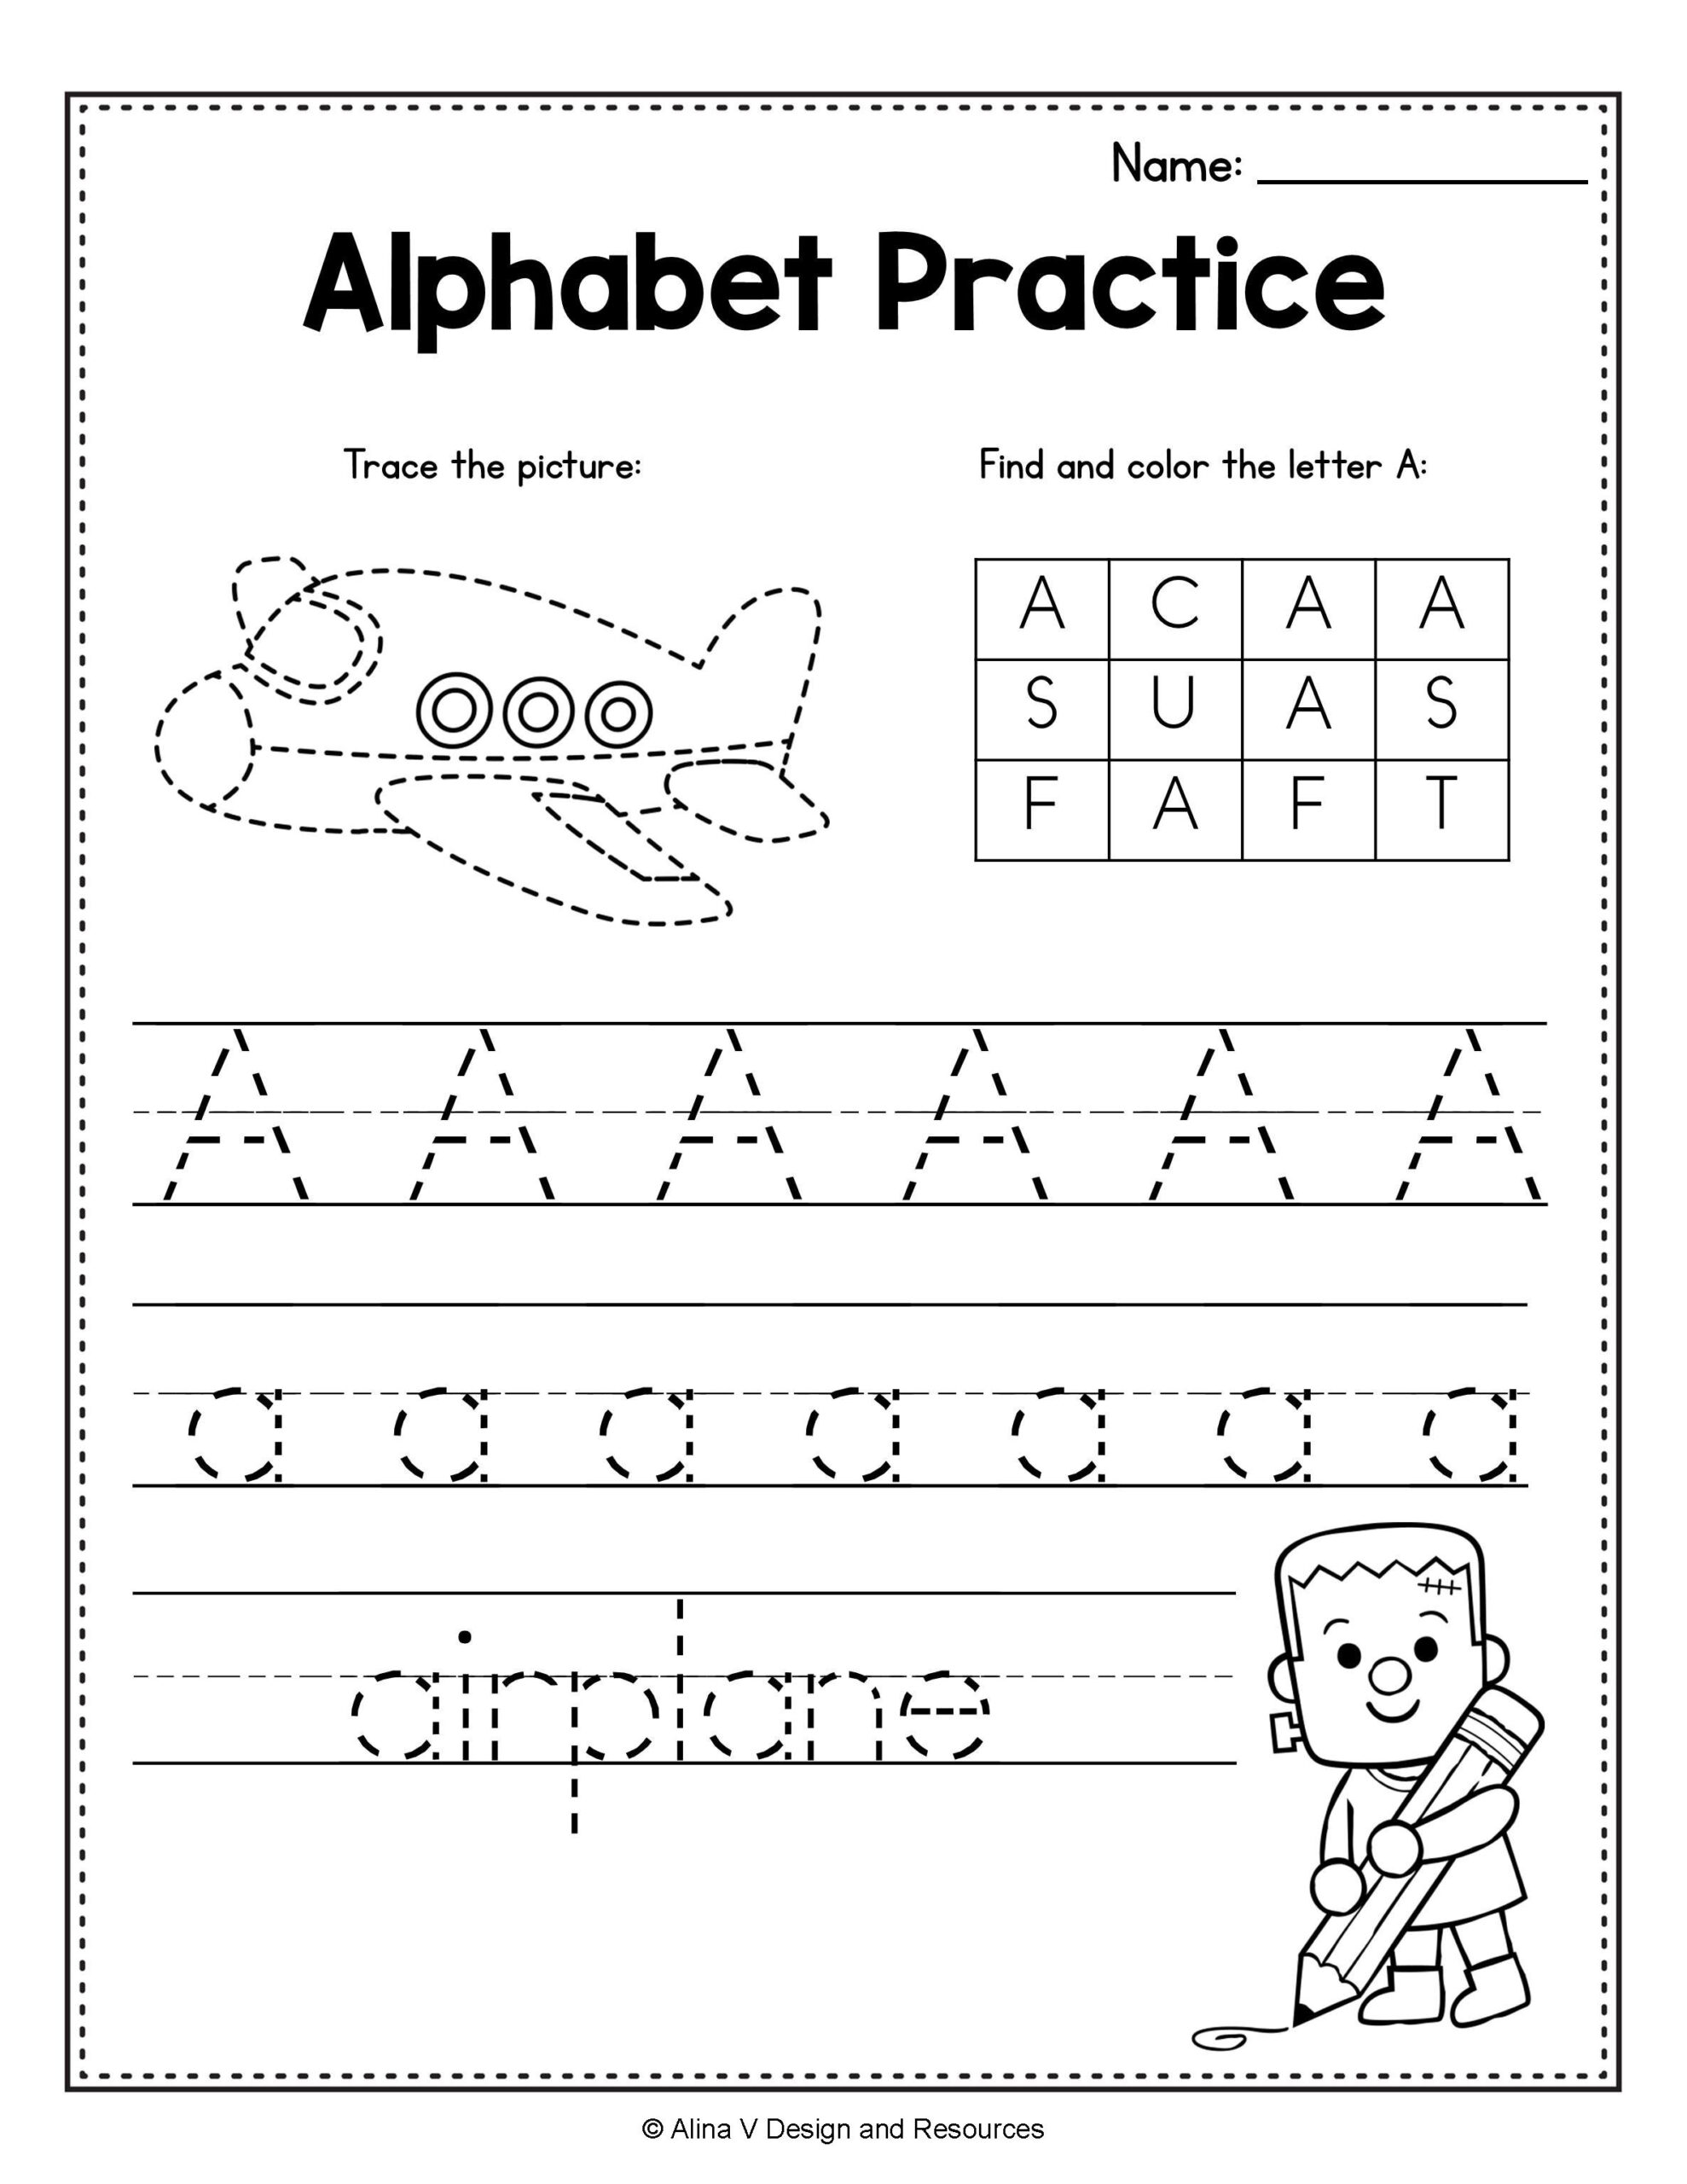 Free Printable Abc Tracing Worksheets In 2020 | Halloween